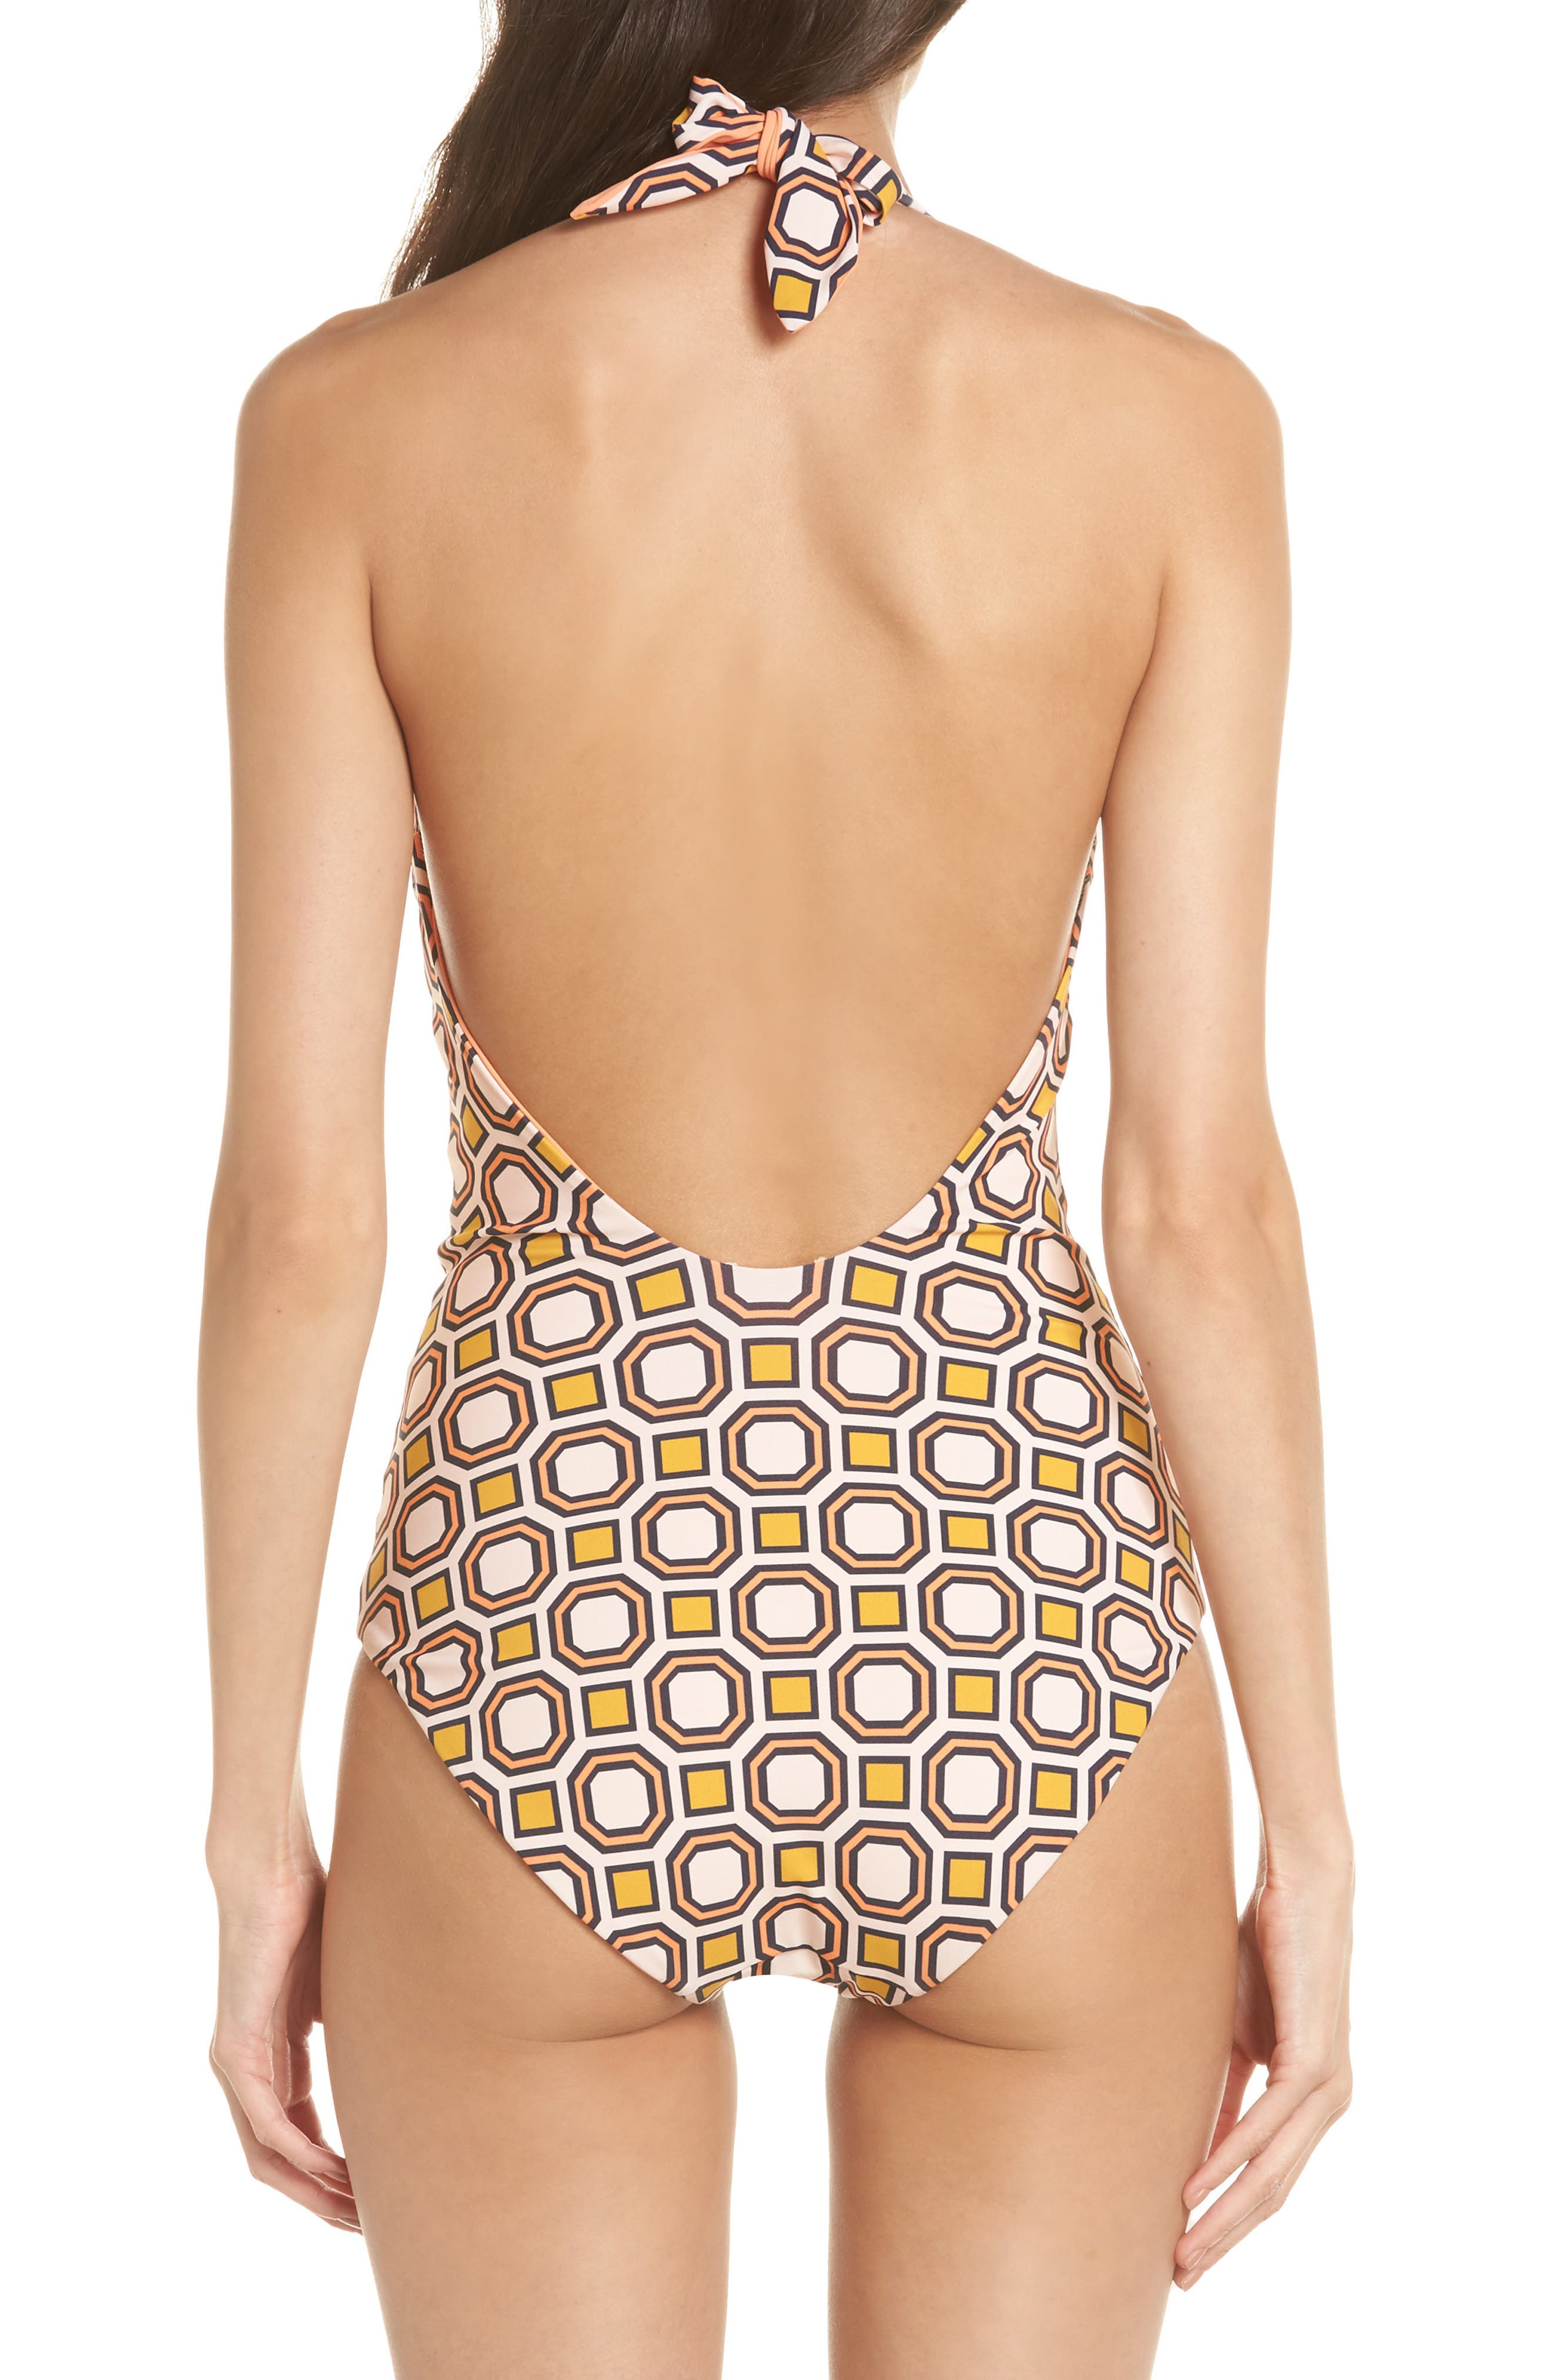 Biarritz Reversible One-Piece Swimsuit,                             Alternate thumbnail 2, color,                             Fresh Melon / Octagon Square